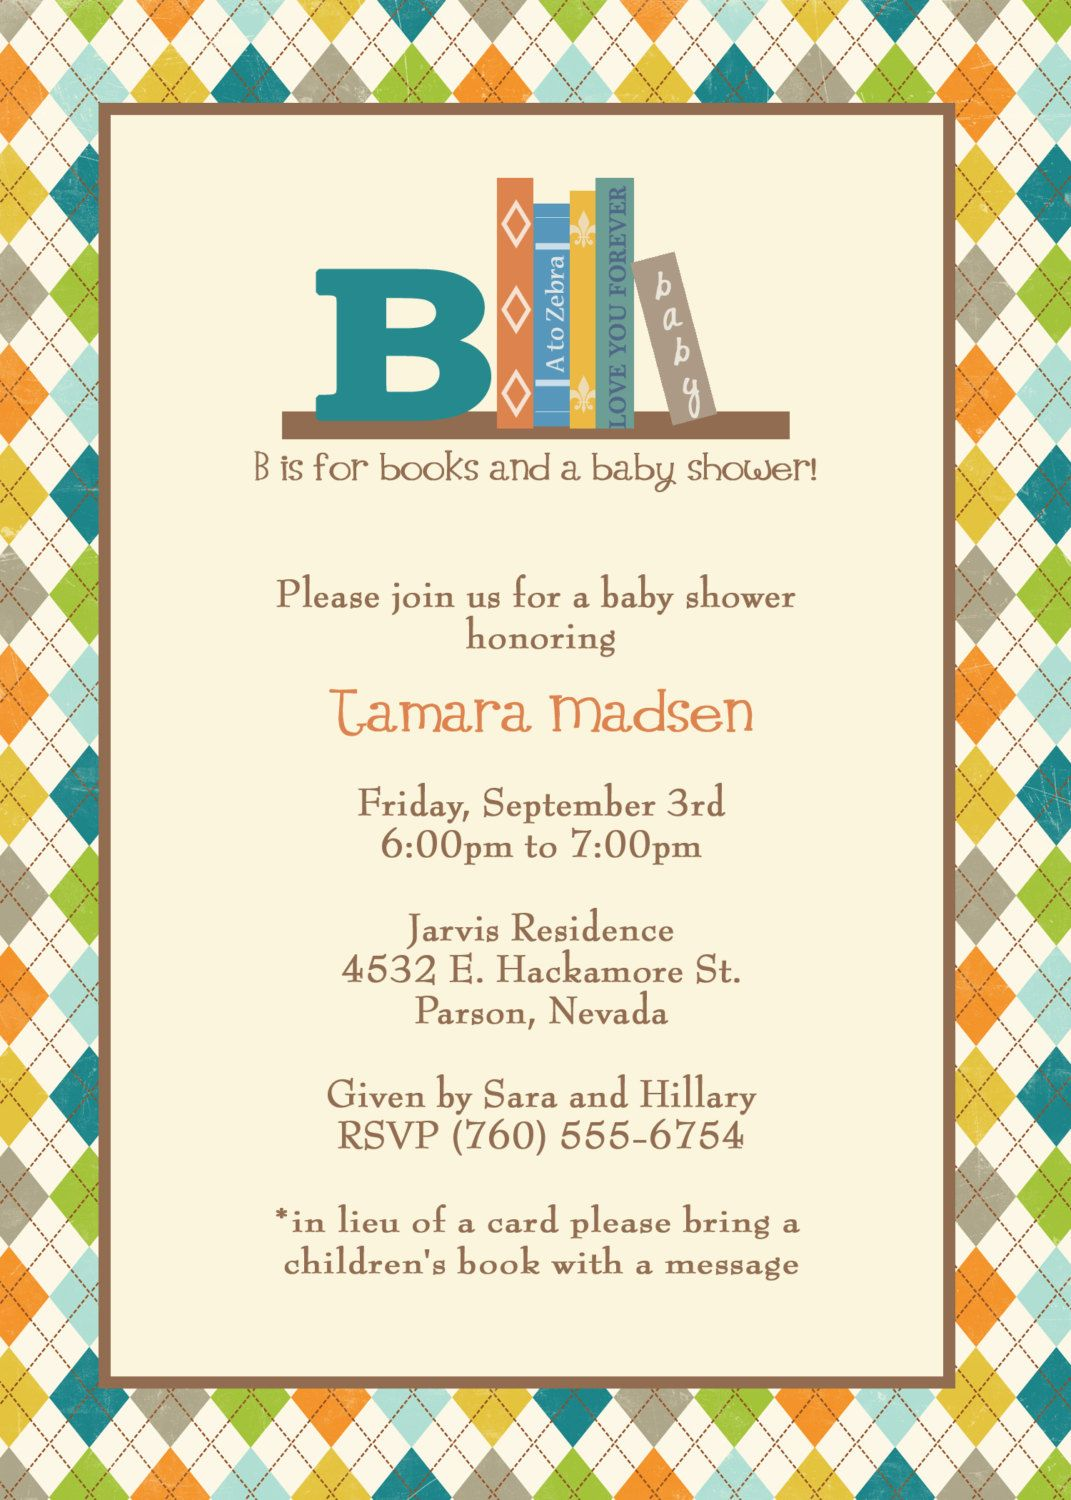 Book Baby Shower Invite, in lieu of a card please bring a children\'s ...